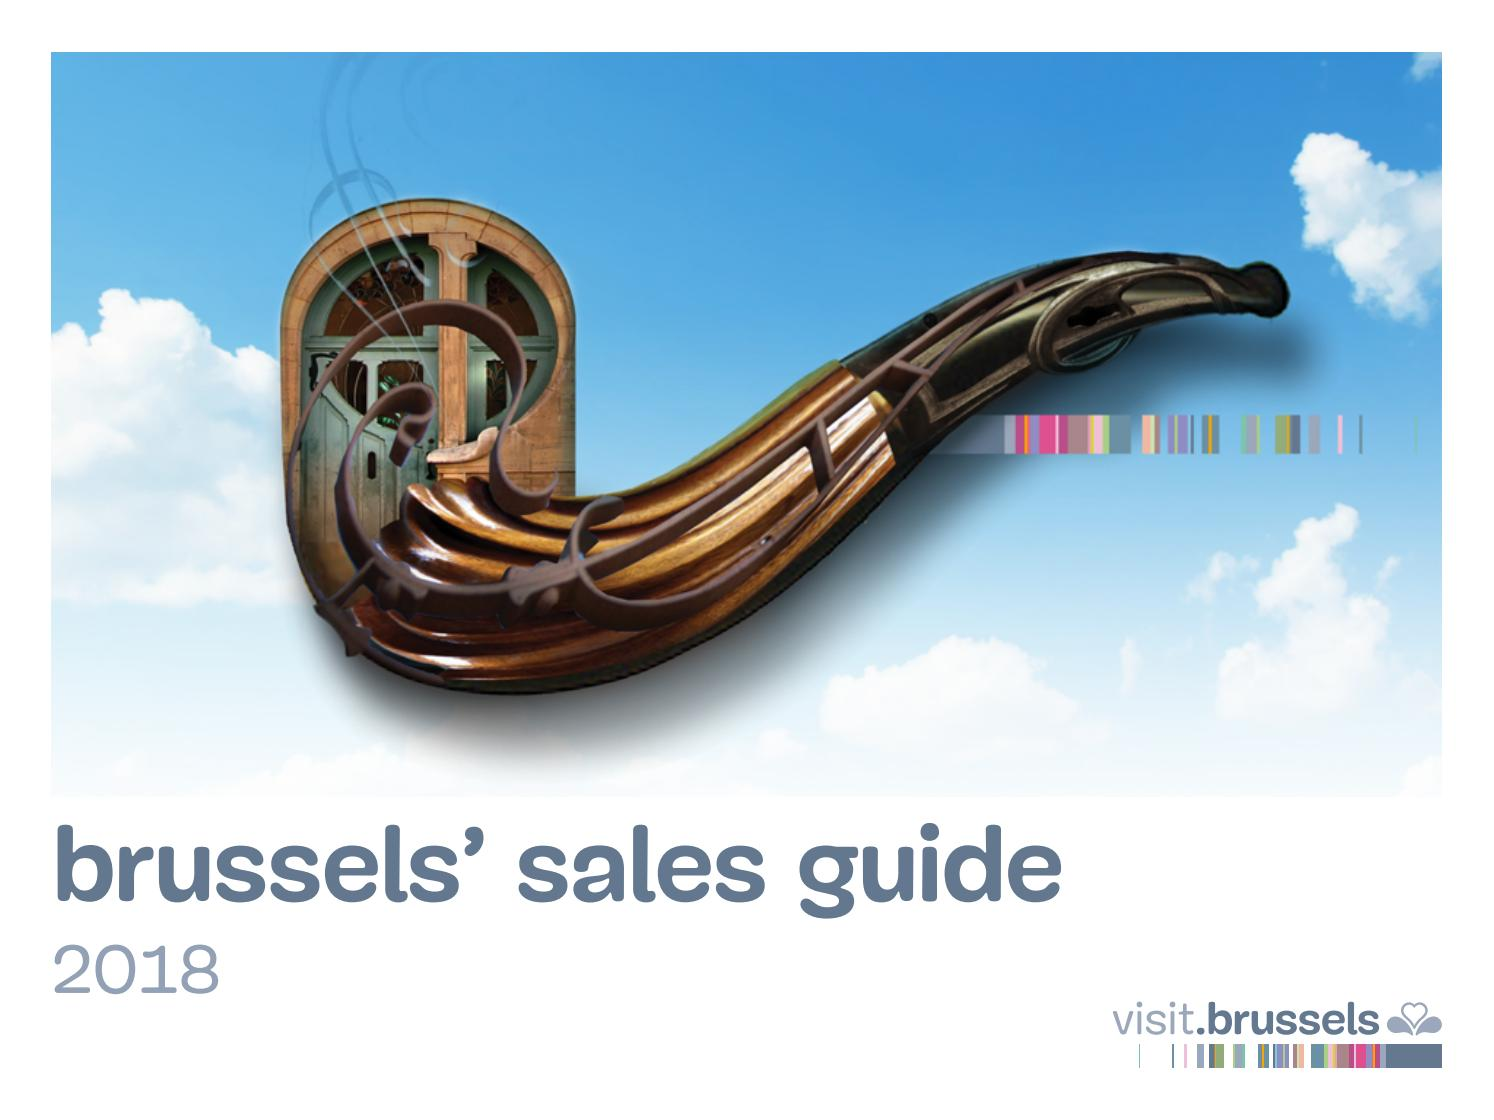 Salon De Jardin Rue Du Commerce Nouveau Brussels Sales Guide 2018 by Visitussels issuu Of 37 Inspirant Salon De Jardin Rue Du Commerce